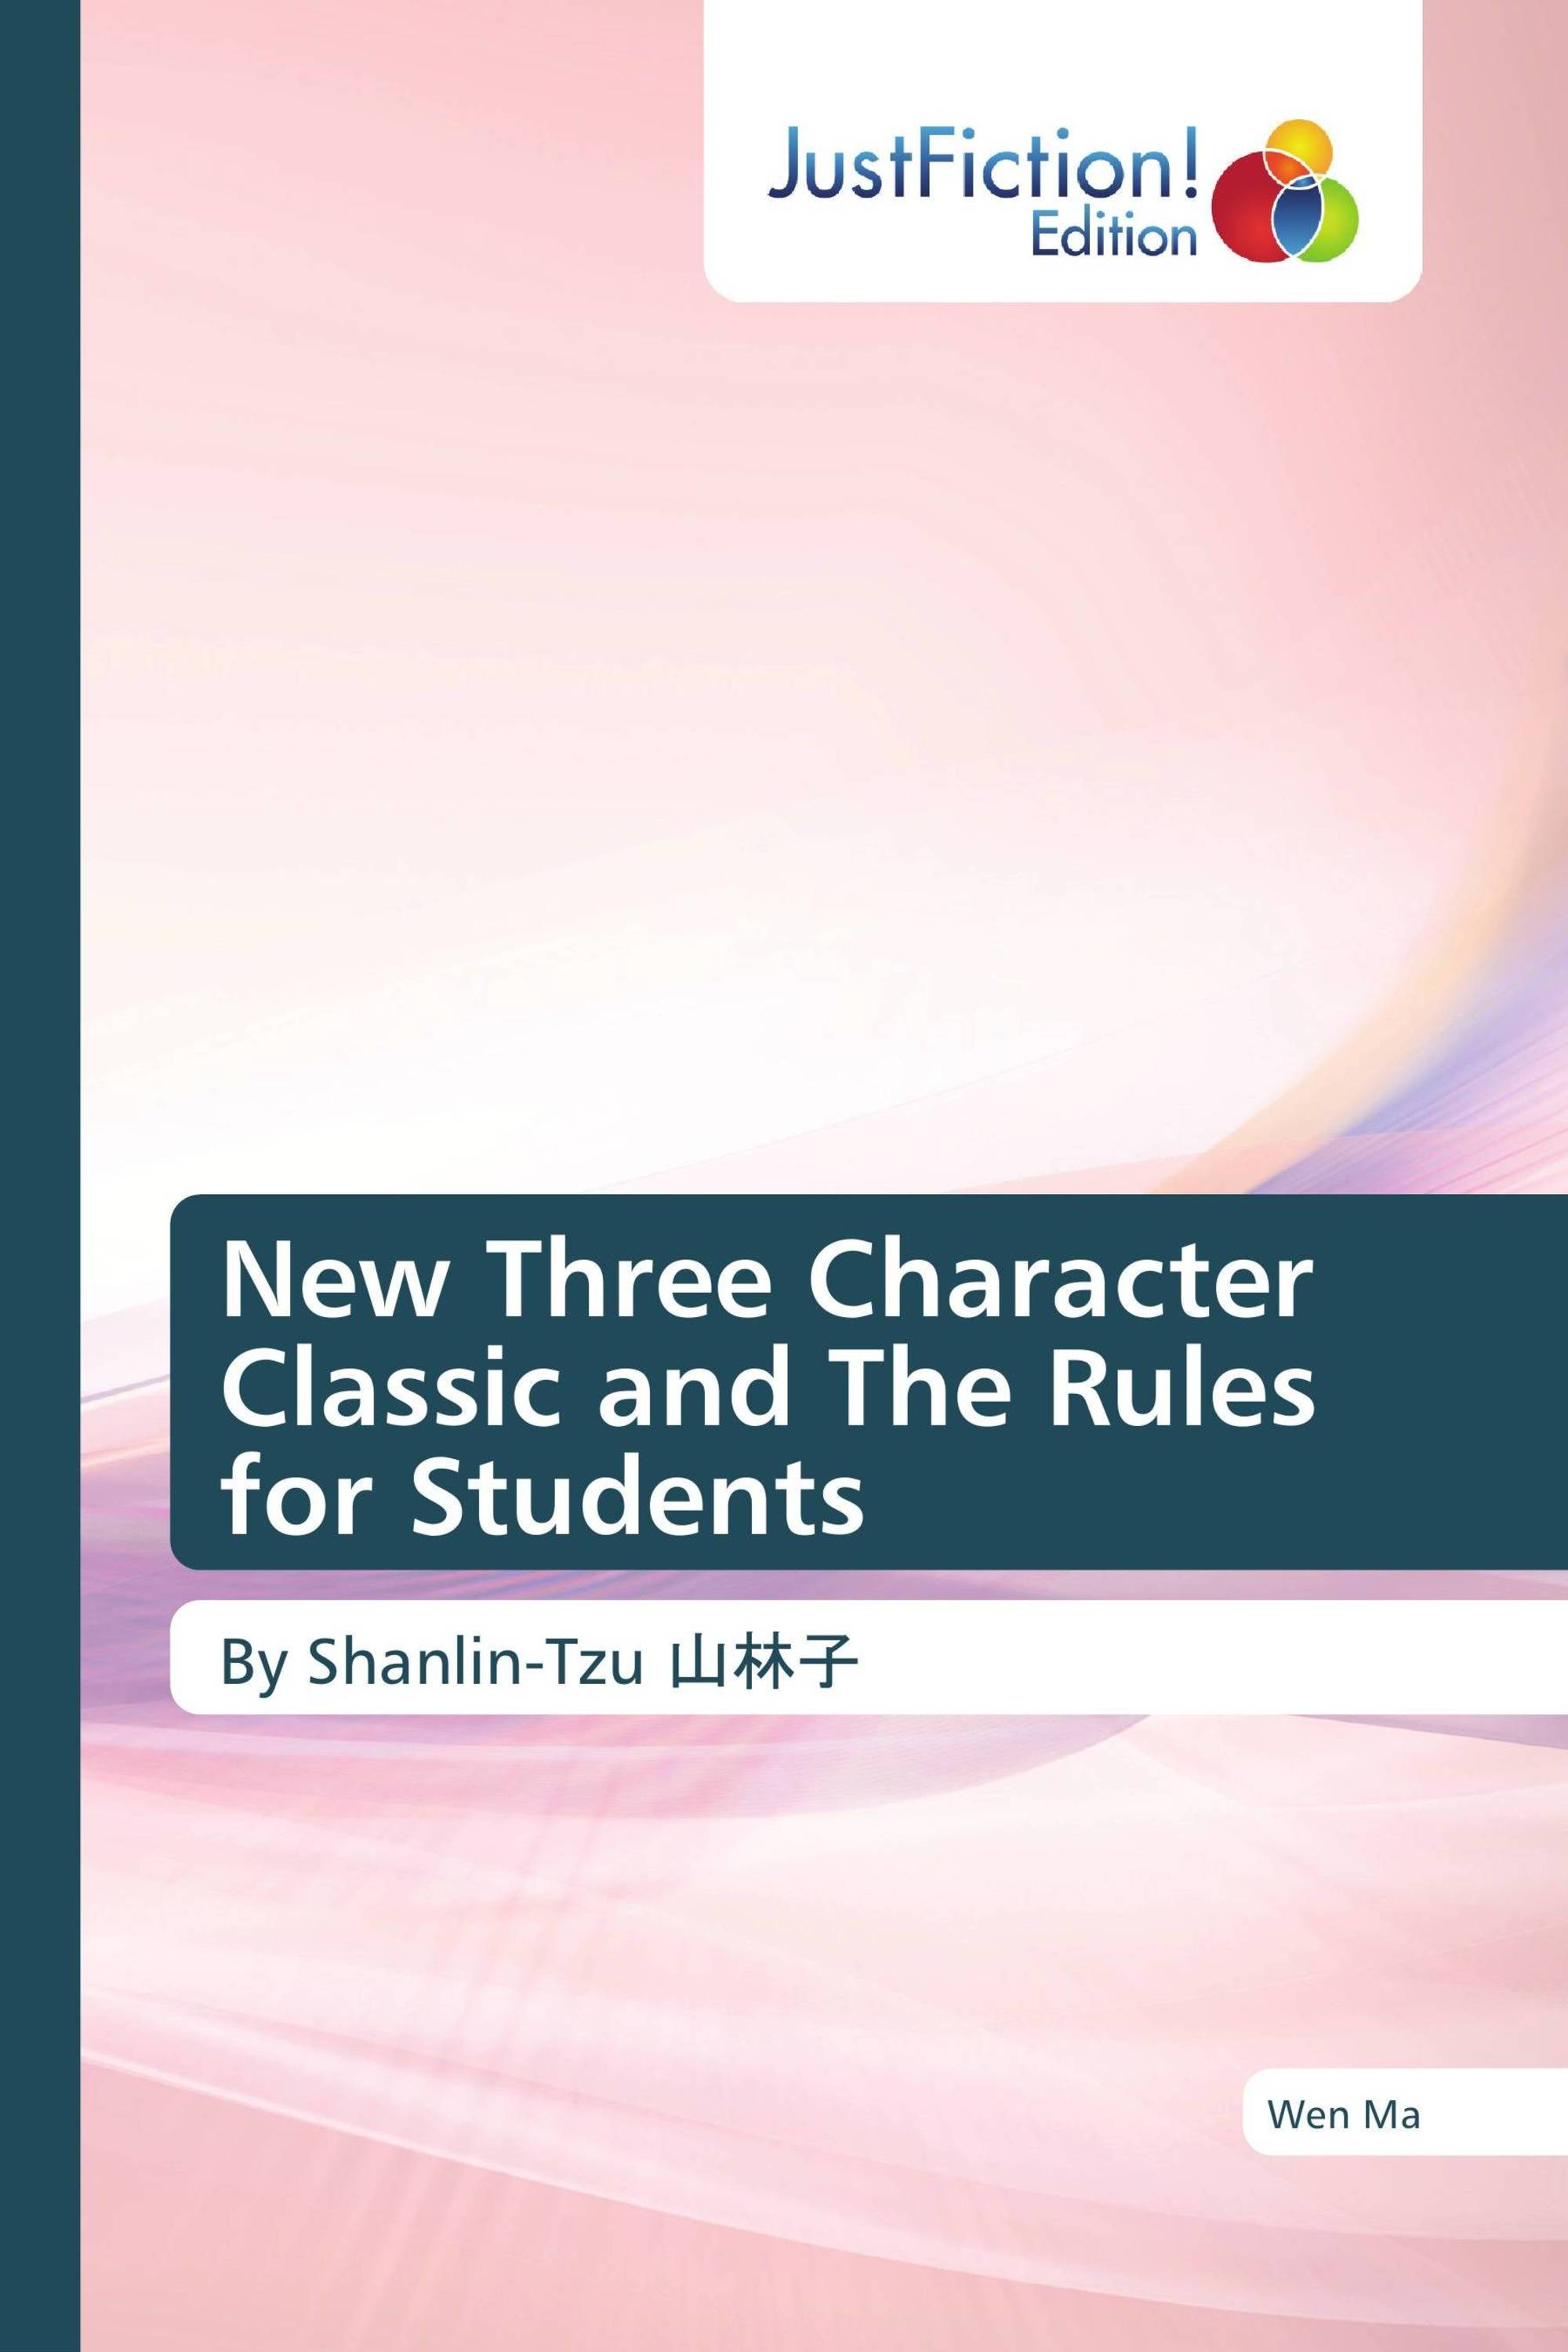 New Three Character Classic and The Rules for Students